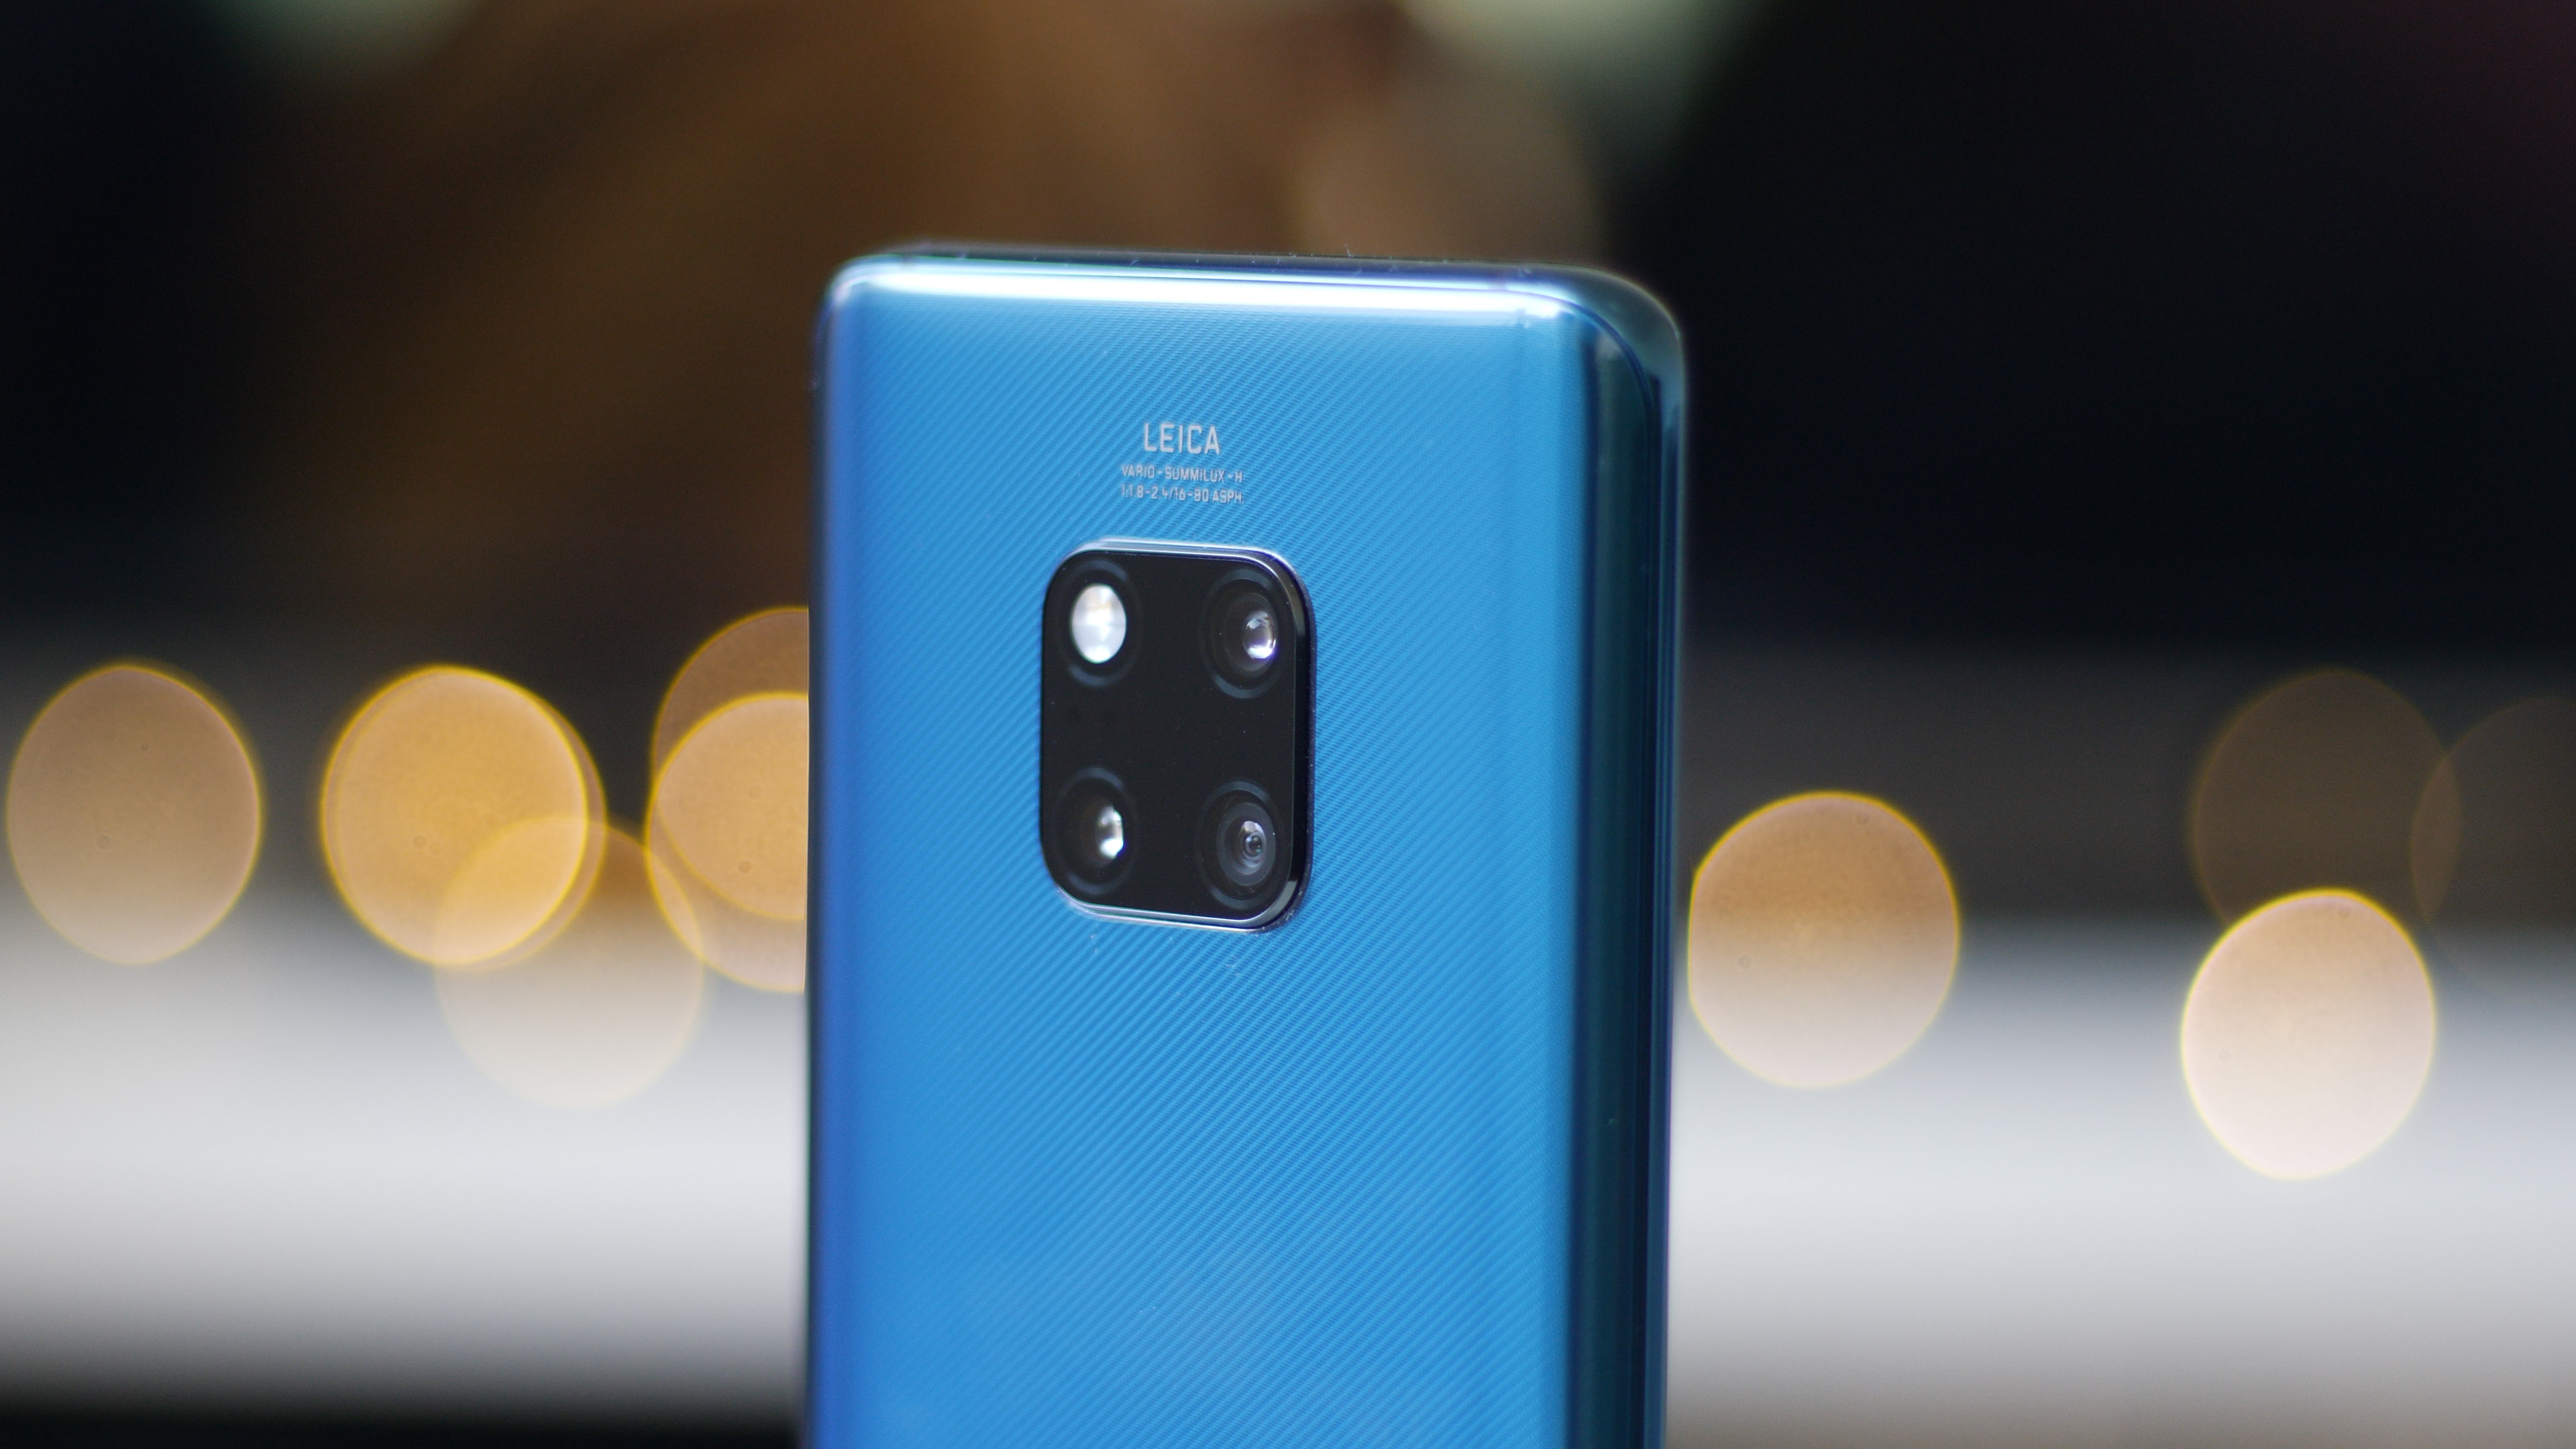 Huawei ships more than 10 million Mate 20 smartphones globally even without the US market